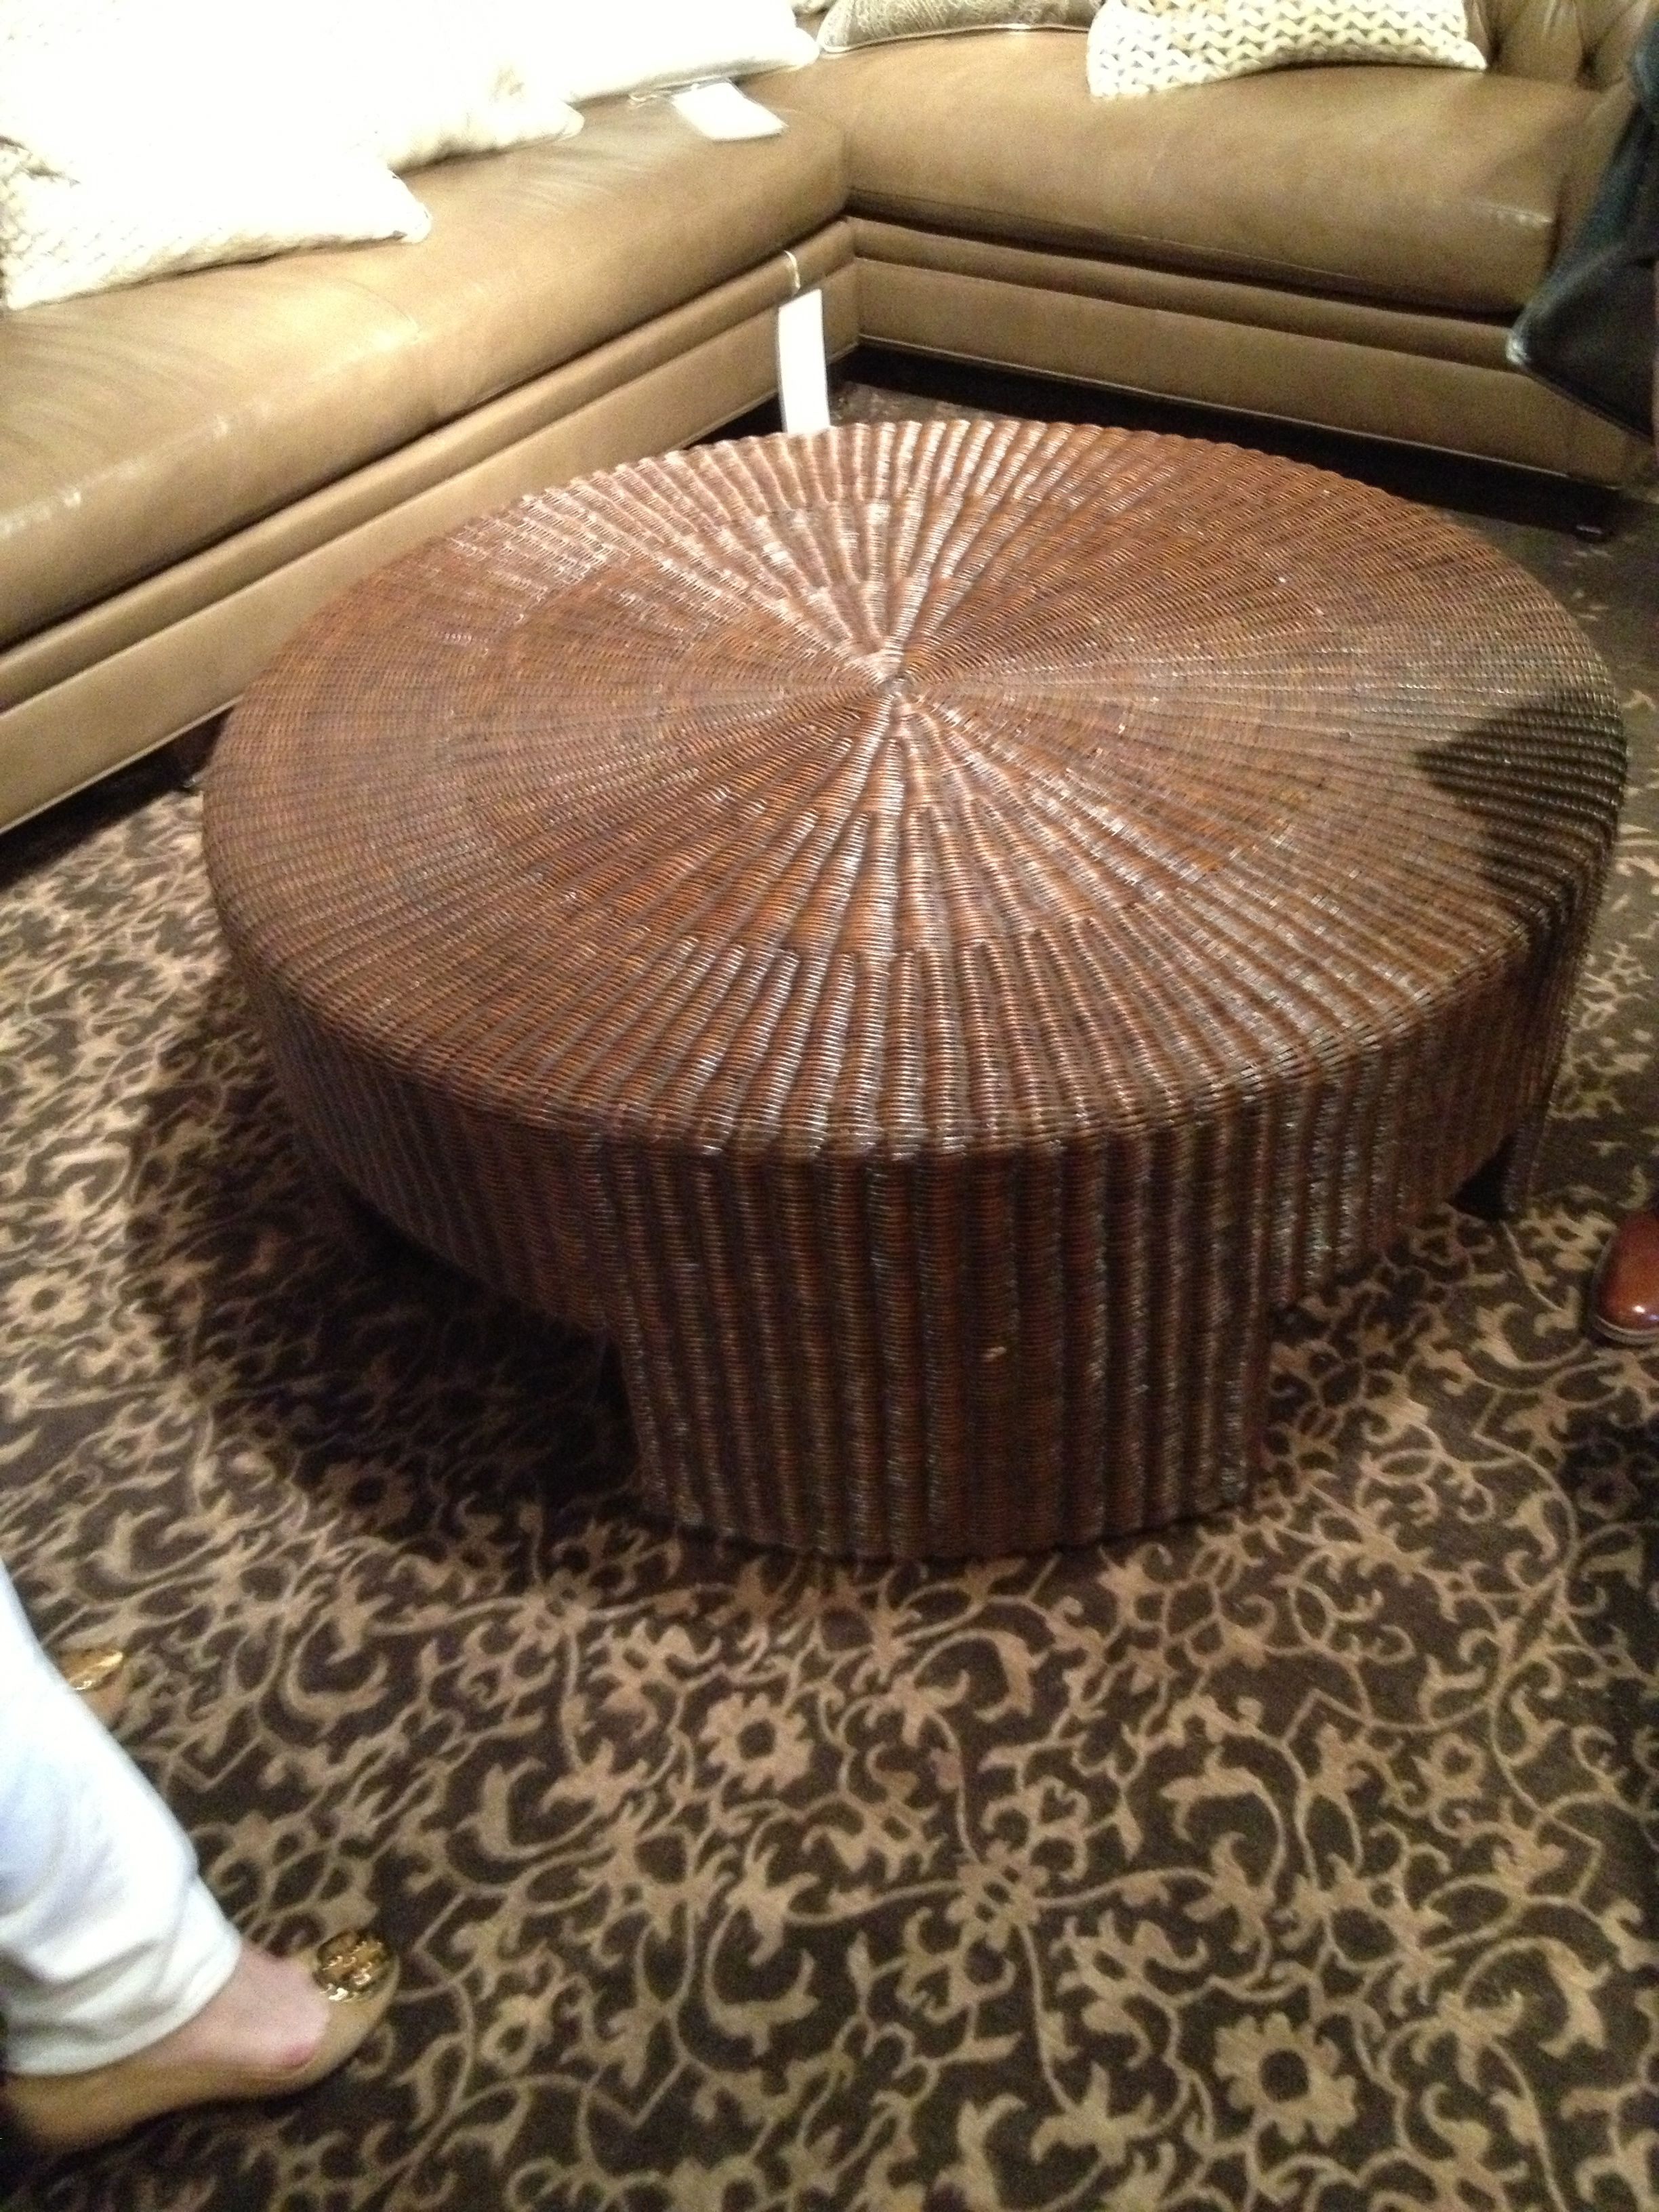 Hickory Chair woven coffee table GM PALM BEACH